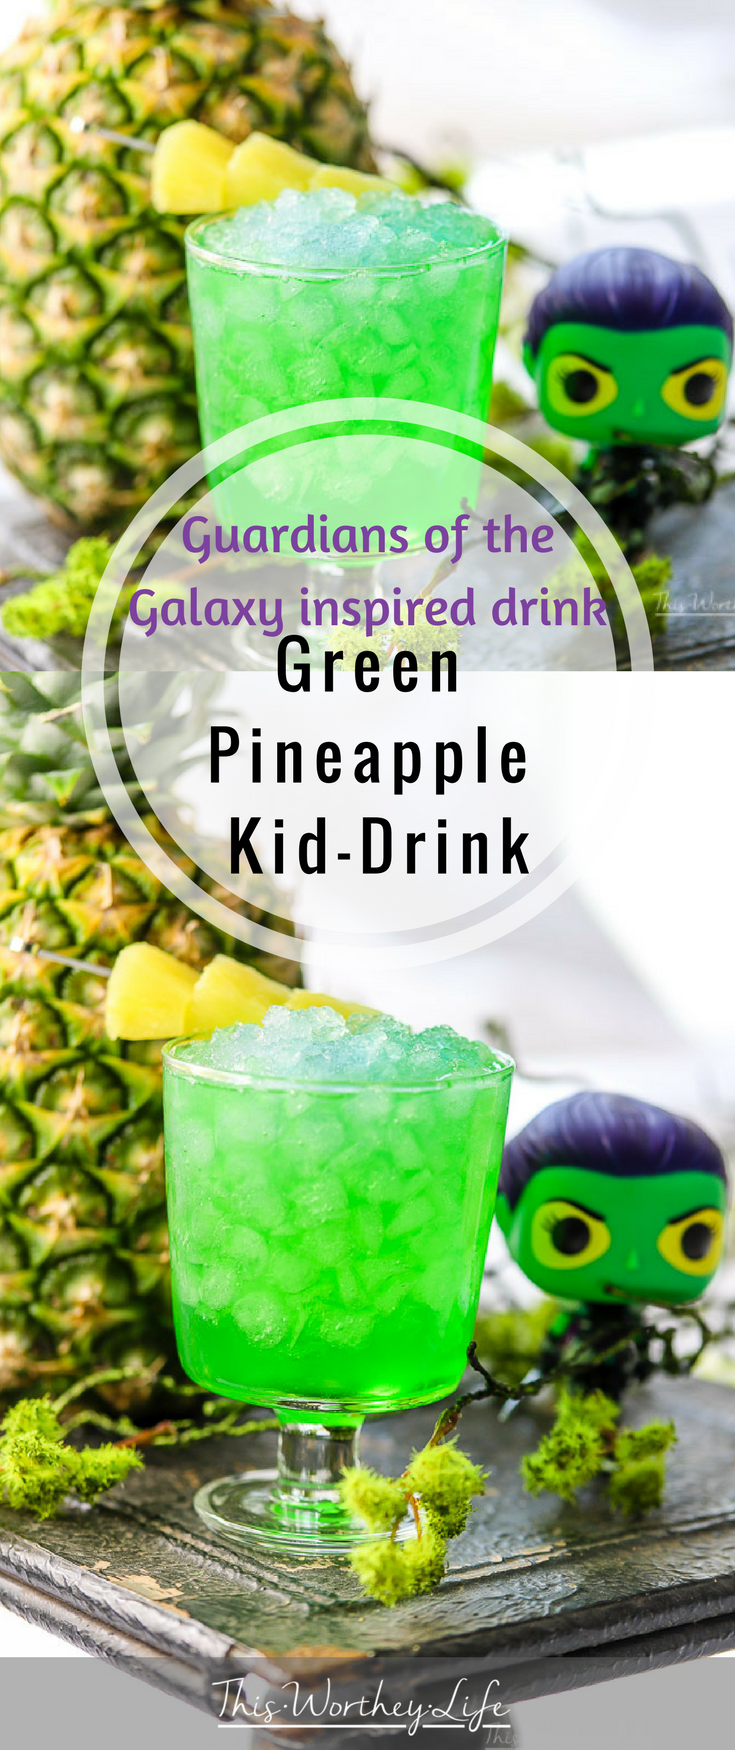 This fun kid-friendly green drink has pineapple juice, green apple syrup, and lemon-lime soda to make a Guardians of the Galaxy drink featuring Gamora!